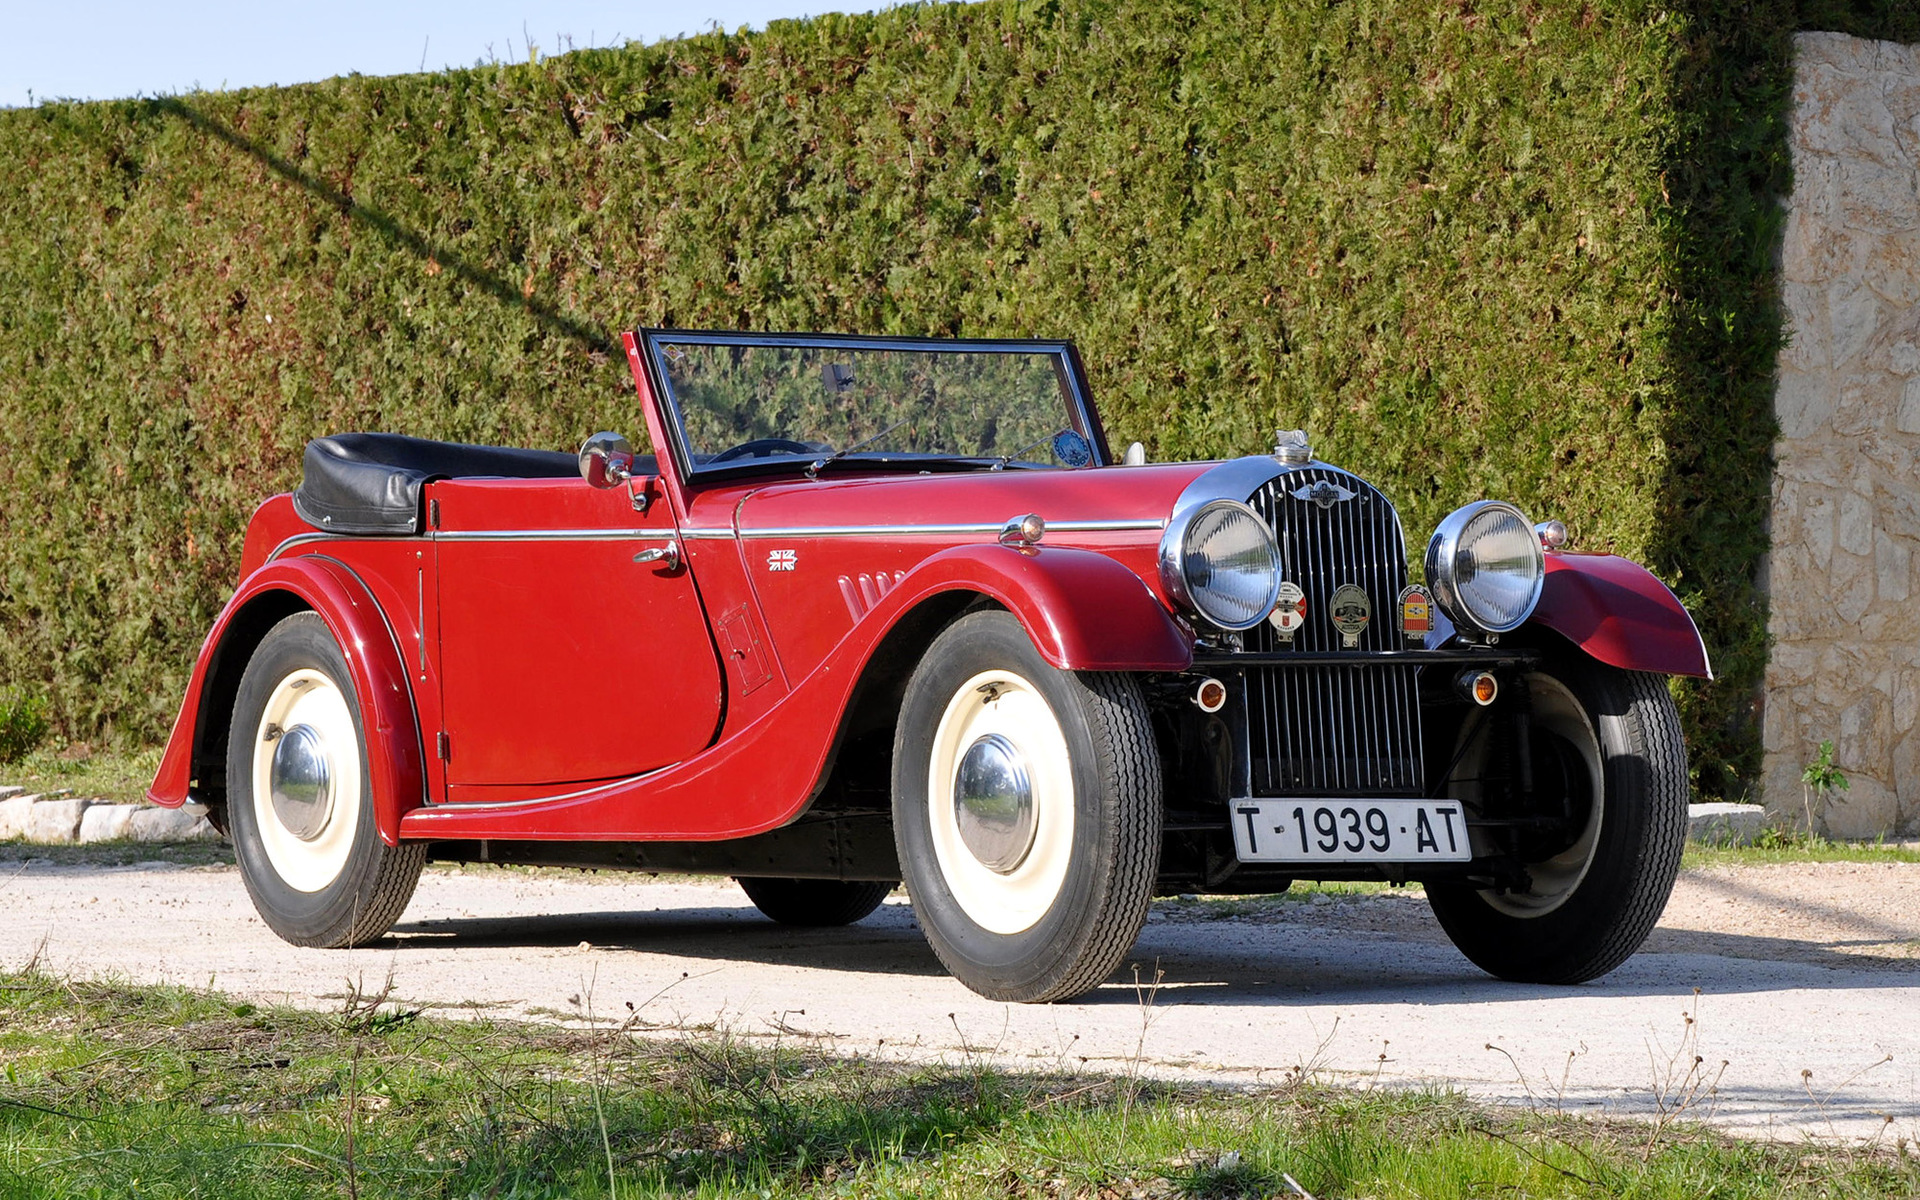 5.2 Dodge Engine >> Morgan 4/4 Drophead Coupe (1939) Wallpapers and HD Images ...